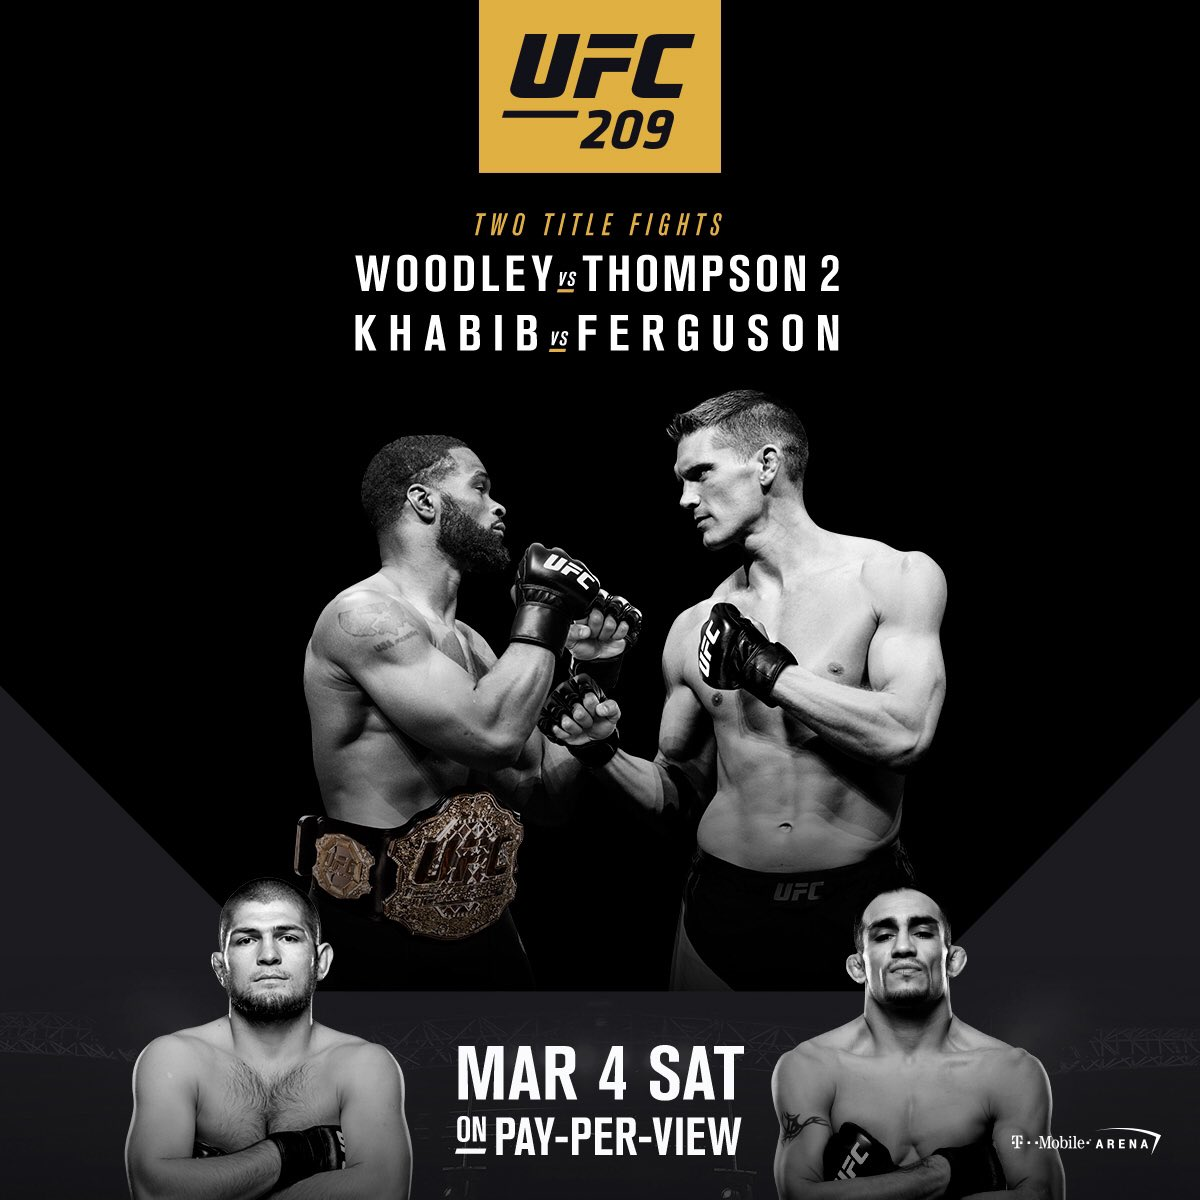 I got the exclusive! The Official #UFC209 Poster! See you in Las Vegas! @ufc #andStill https://t.co/sPbQMX4NxZ